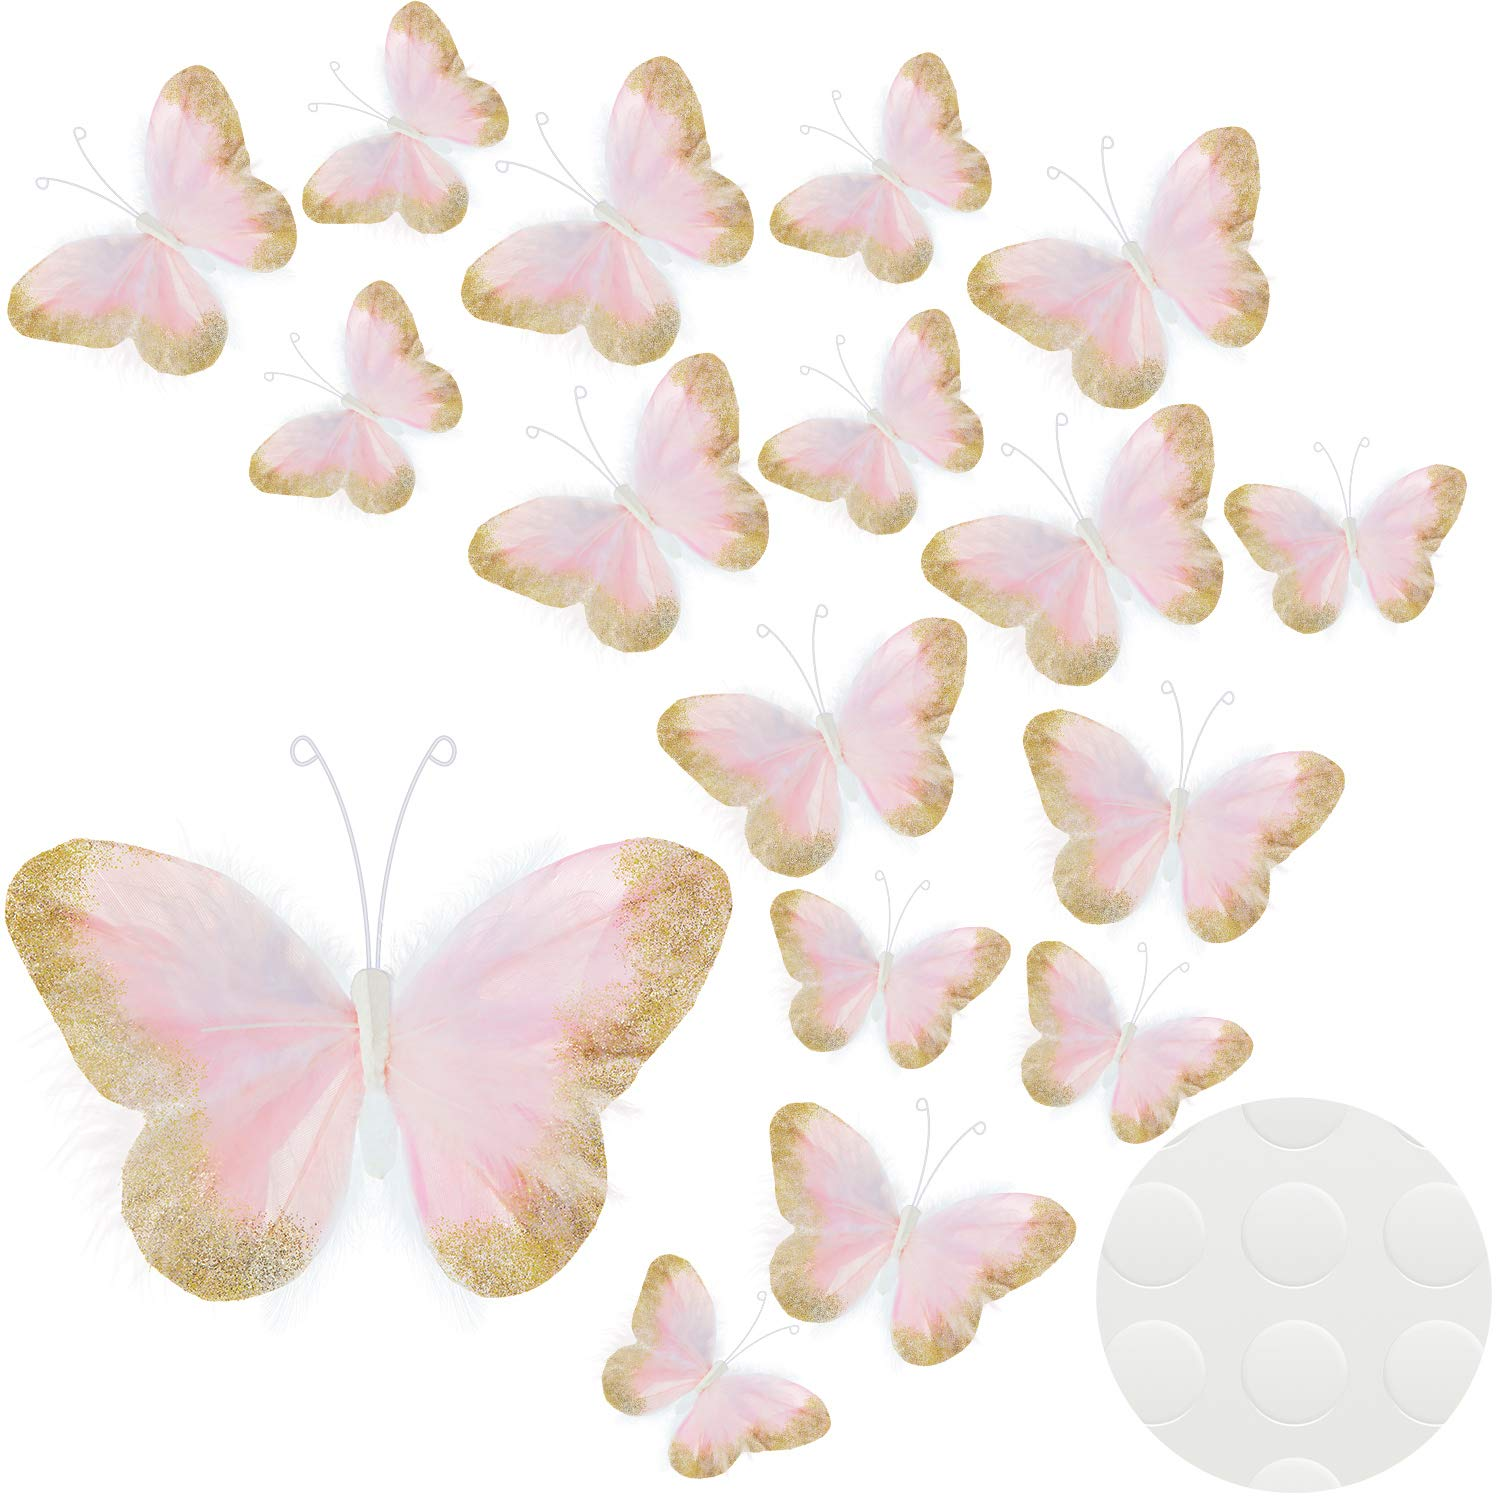 16 Pieces Feather 3D Butterfly Wall Decals Gold Glitter Butterfly Decor Stickers for Room Home Nursery Classroom Offices Kids Girl Boy Bedroom Bathroom Living Room Decor (Pink)